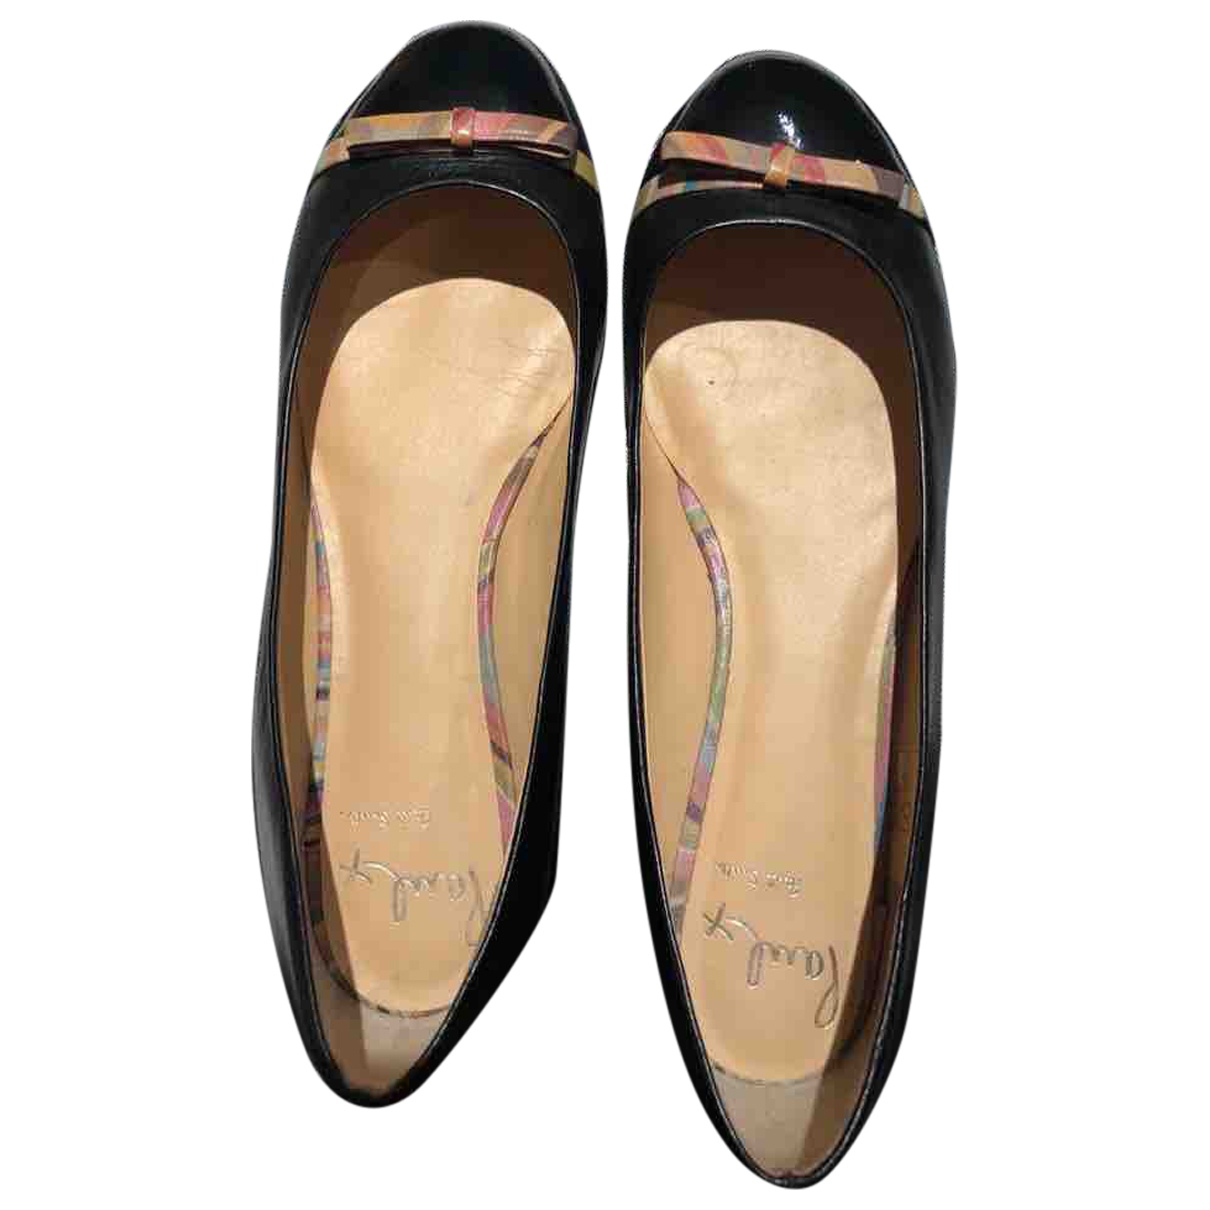 Paul Smith N Black Leather Flats for Women 6 UK